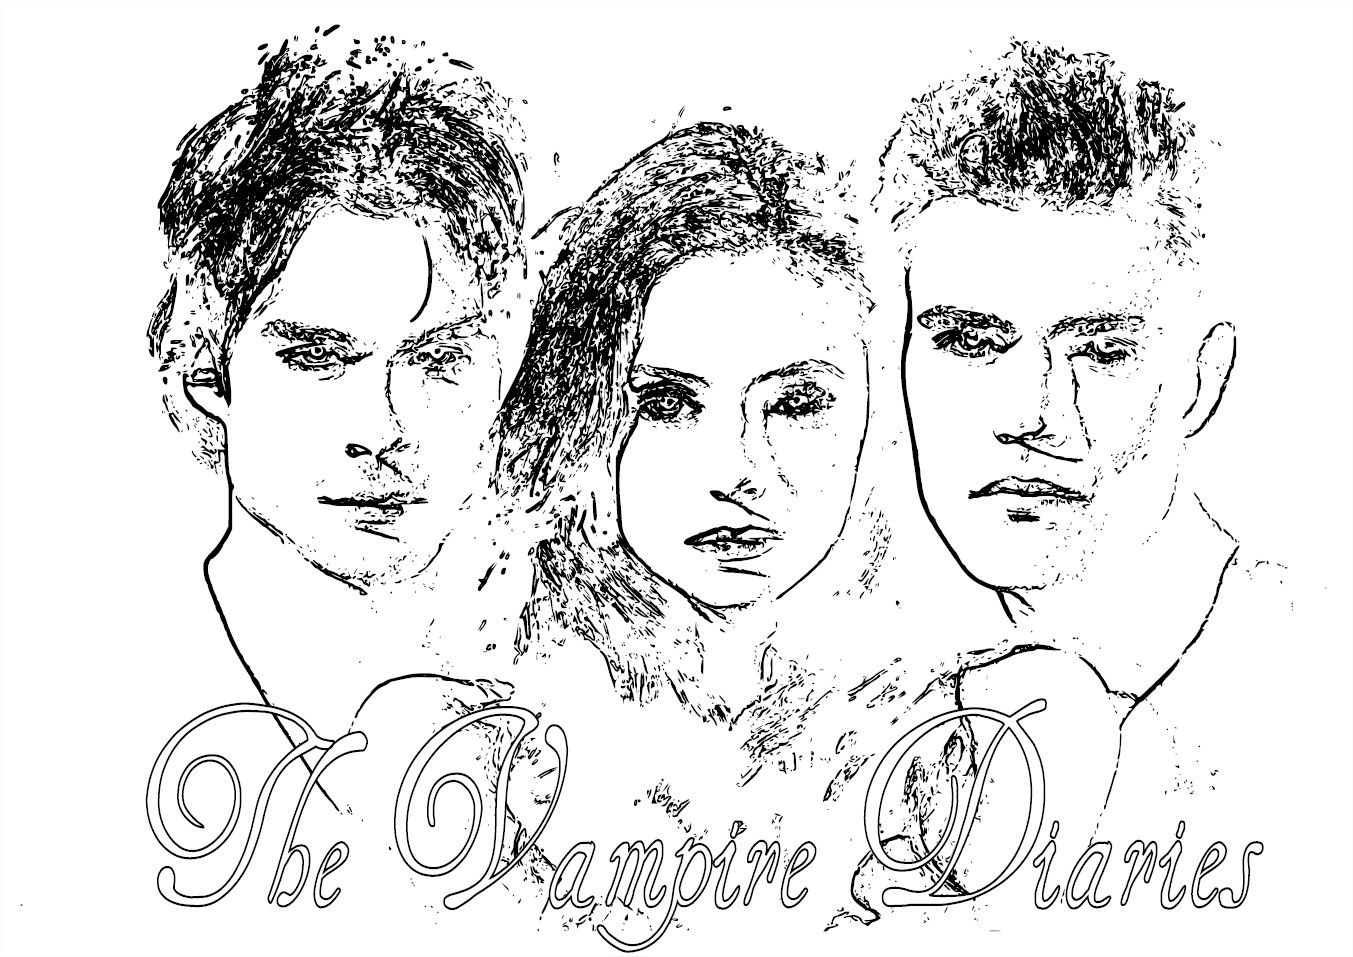 coloring sheet vampire diaries coloring pages vampire diaries coloring pages kyrsten vogts pinterest diaries sheet coloring coloring vampire pages